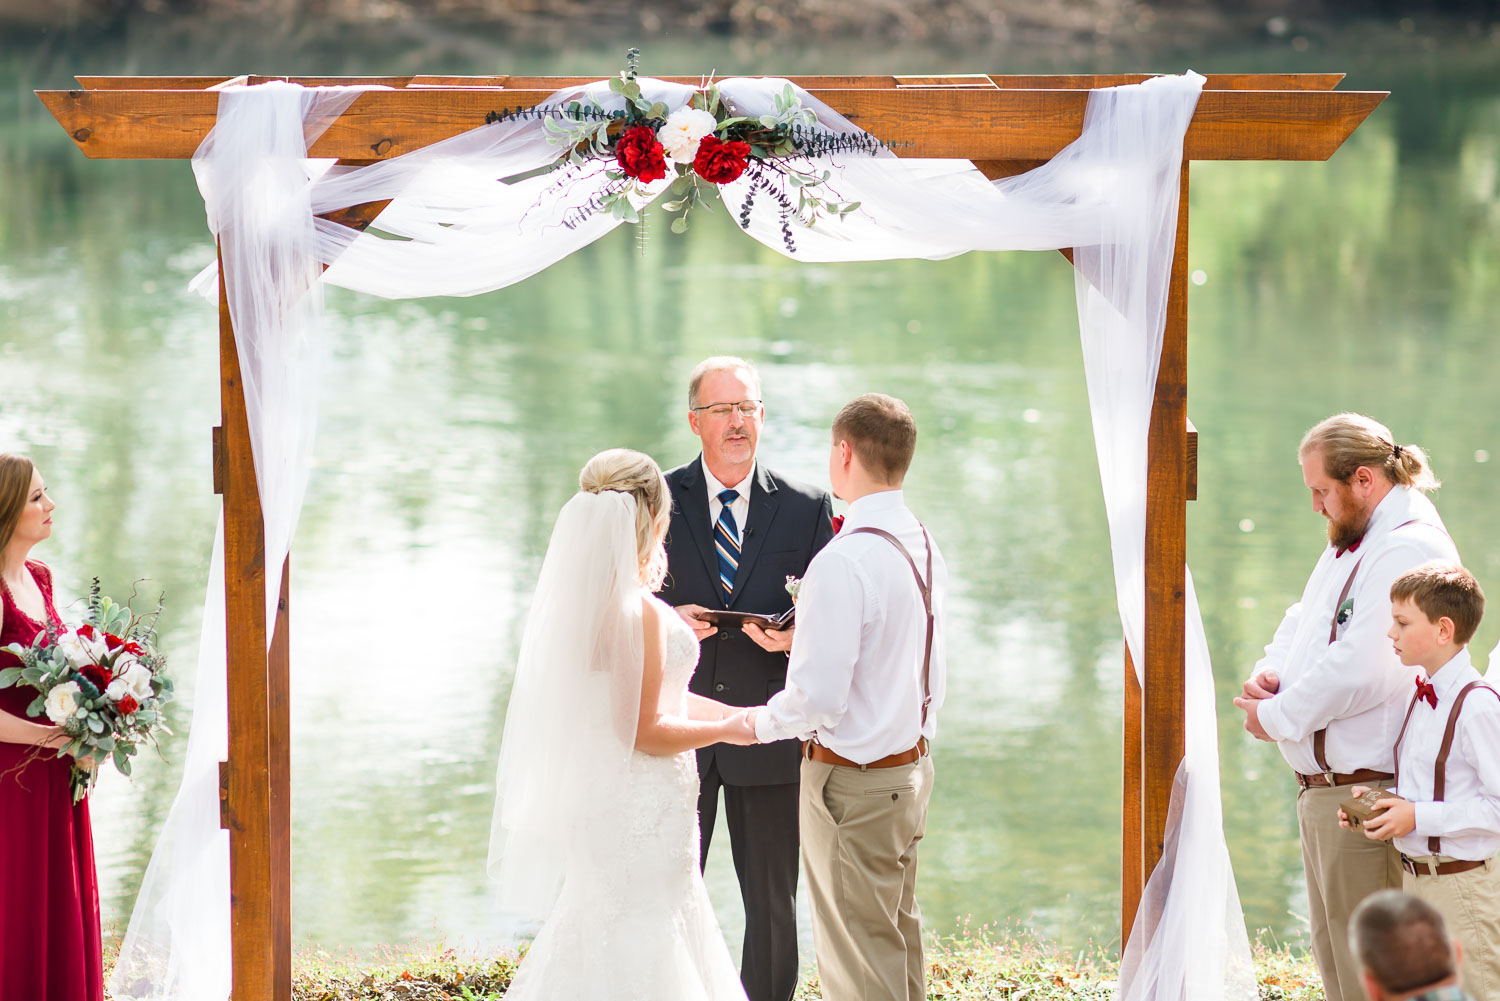 Outside river wedding ceremony at Hiwassee River wedding venue in East TN